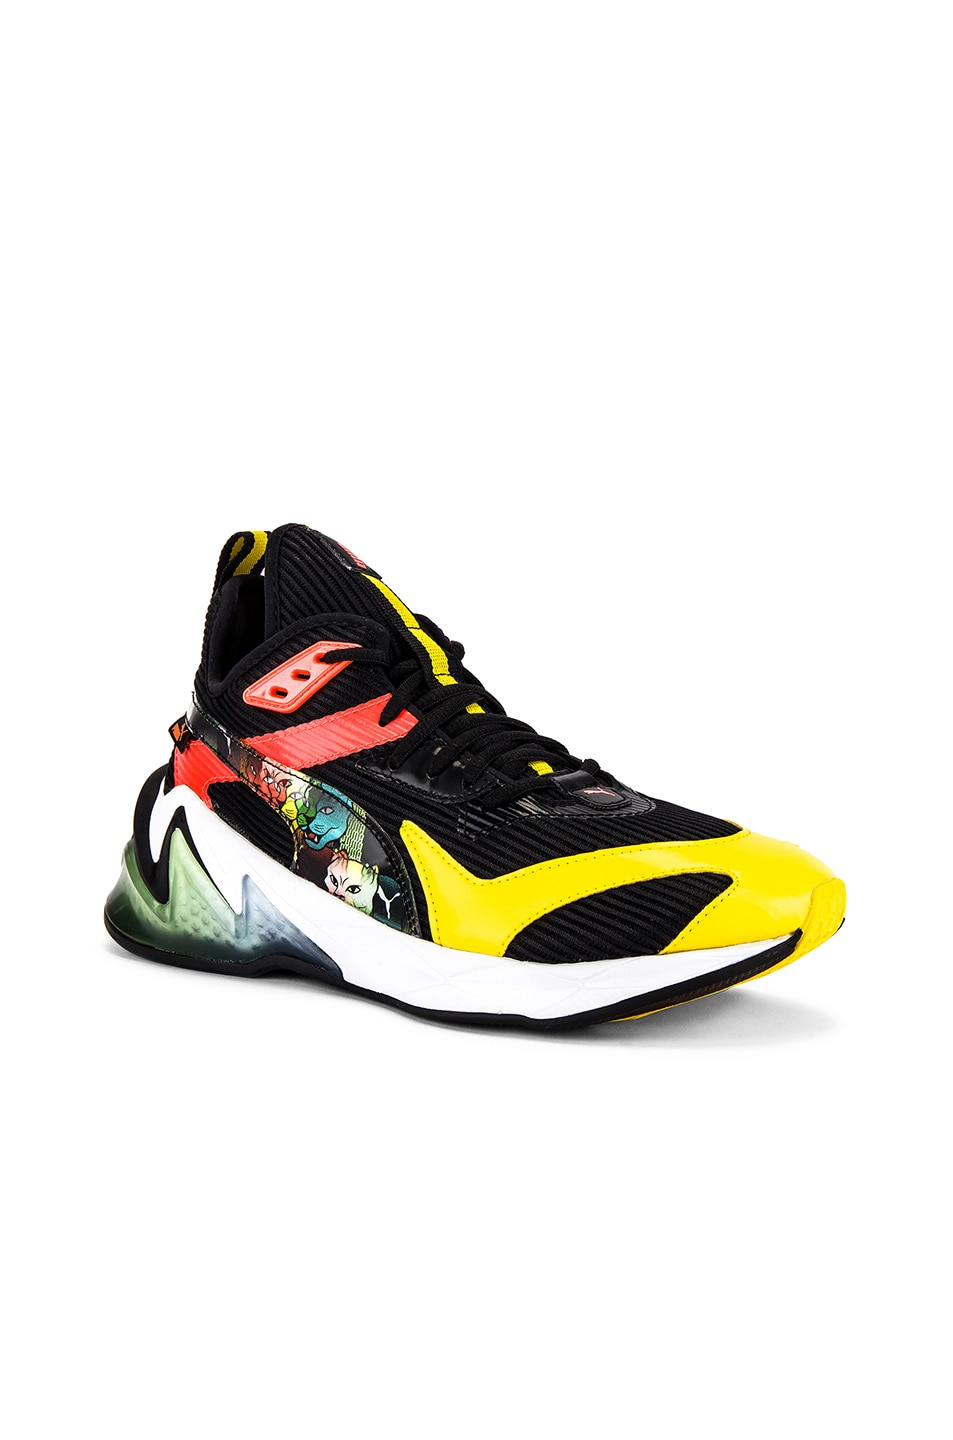 Image 1 of Puma Select LQDCell Prigin Scary Cat in Puma Black & Dandelion & Nrgy Red